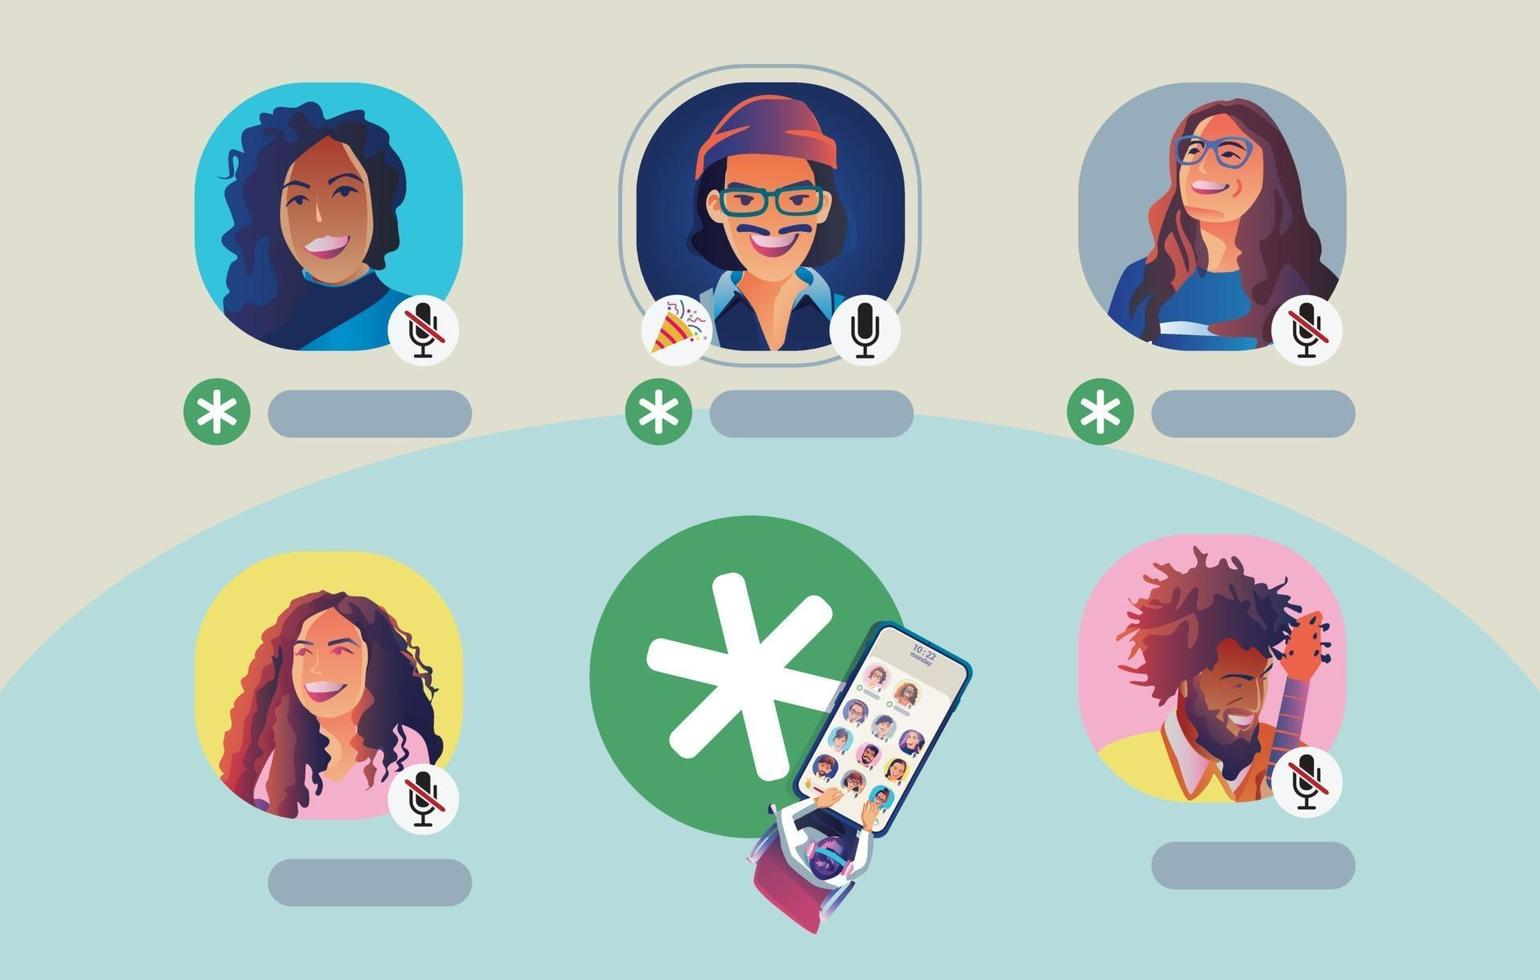 Social network concept with user profiles vector